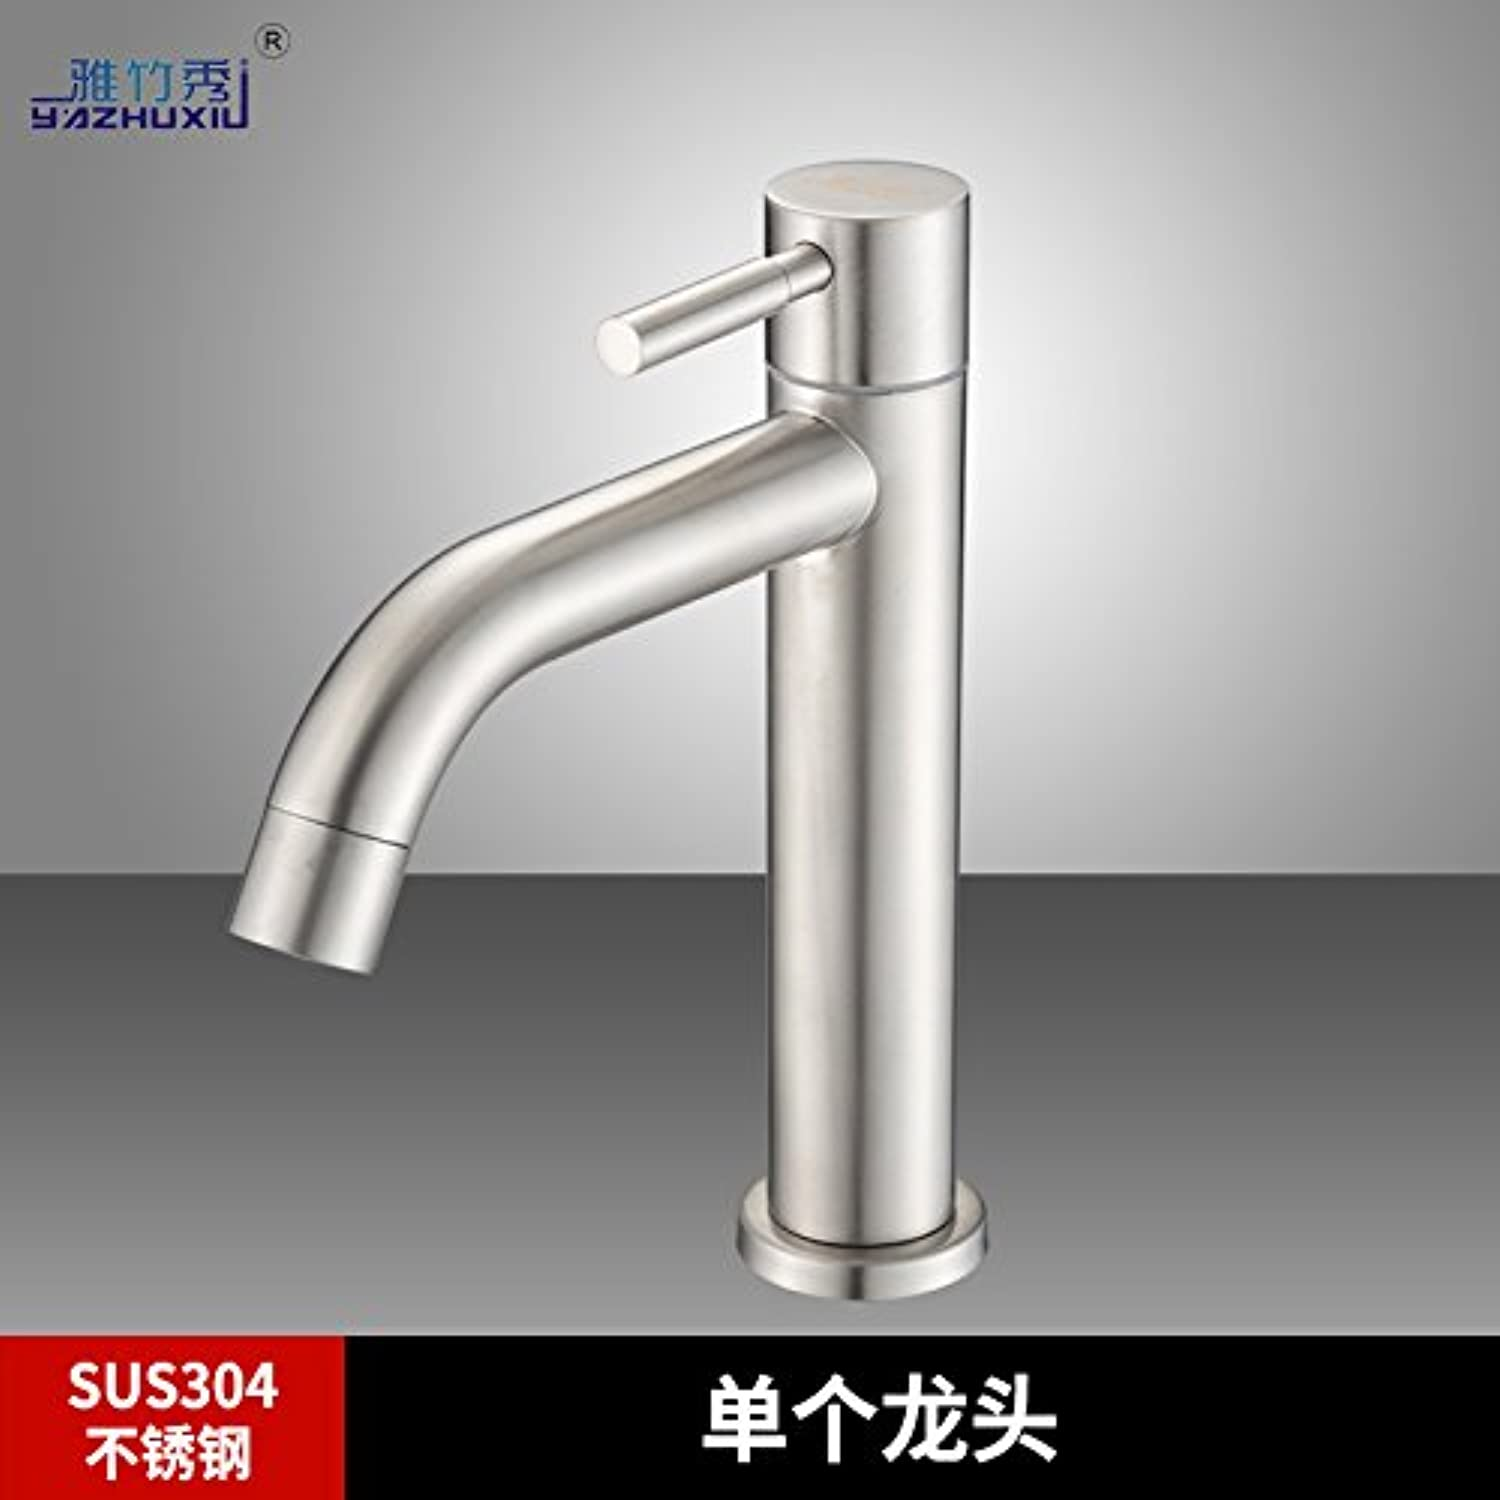 Gyps Faucet Basin Mixer Tap Waterfall Faucet Antique Bathroom Mixer Bar Mixer Shower Set Tap antique bathroom faucet 304 Stainless Steel Basin single cold-hot water tap ceramic basin wash basins wash